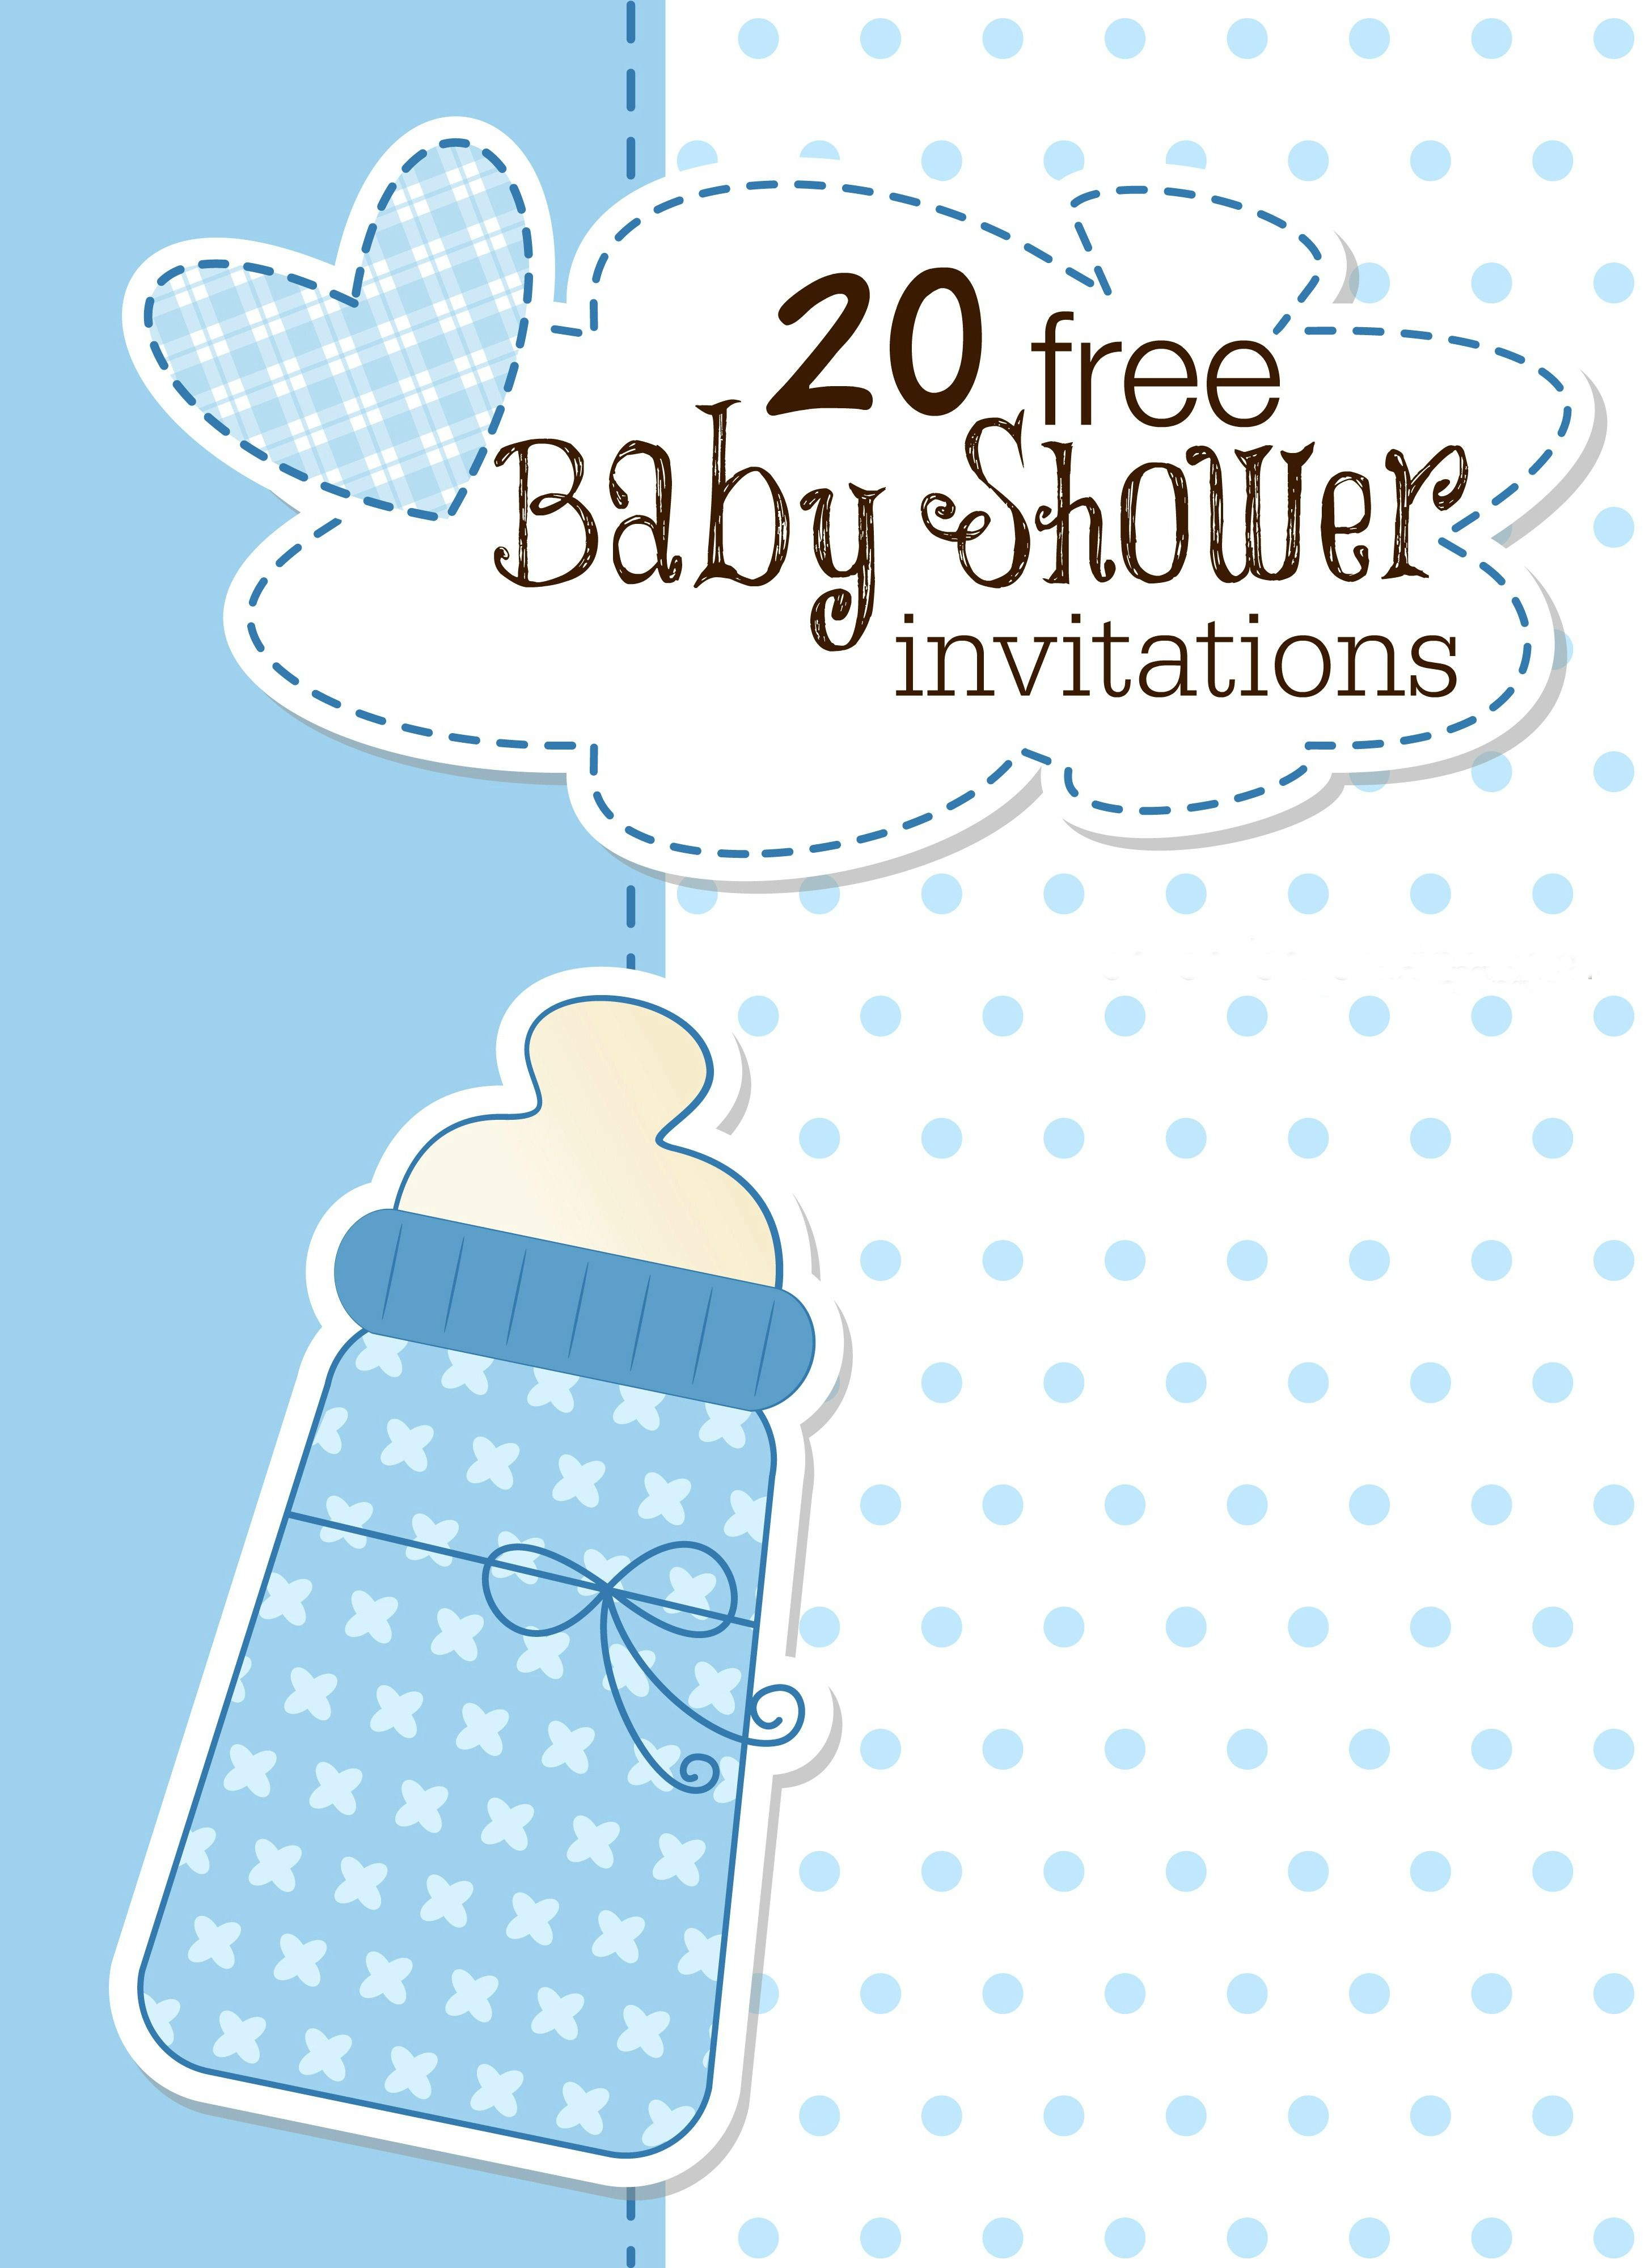 Are You Planning A Baby Shower? You'll Find This List Of Free - Free Printable Baby Shower Invitations